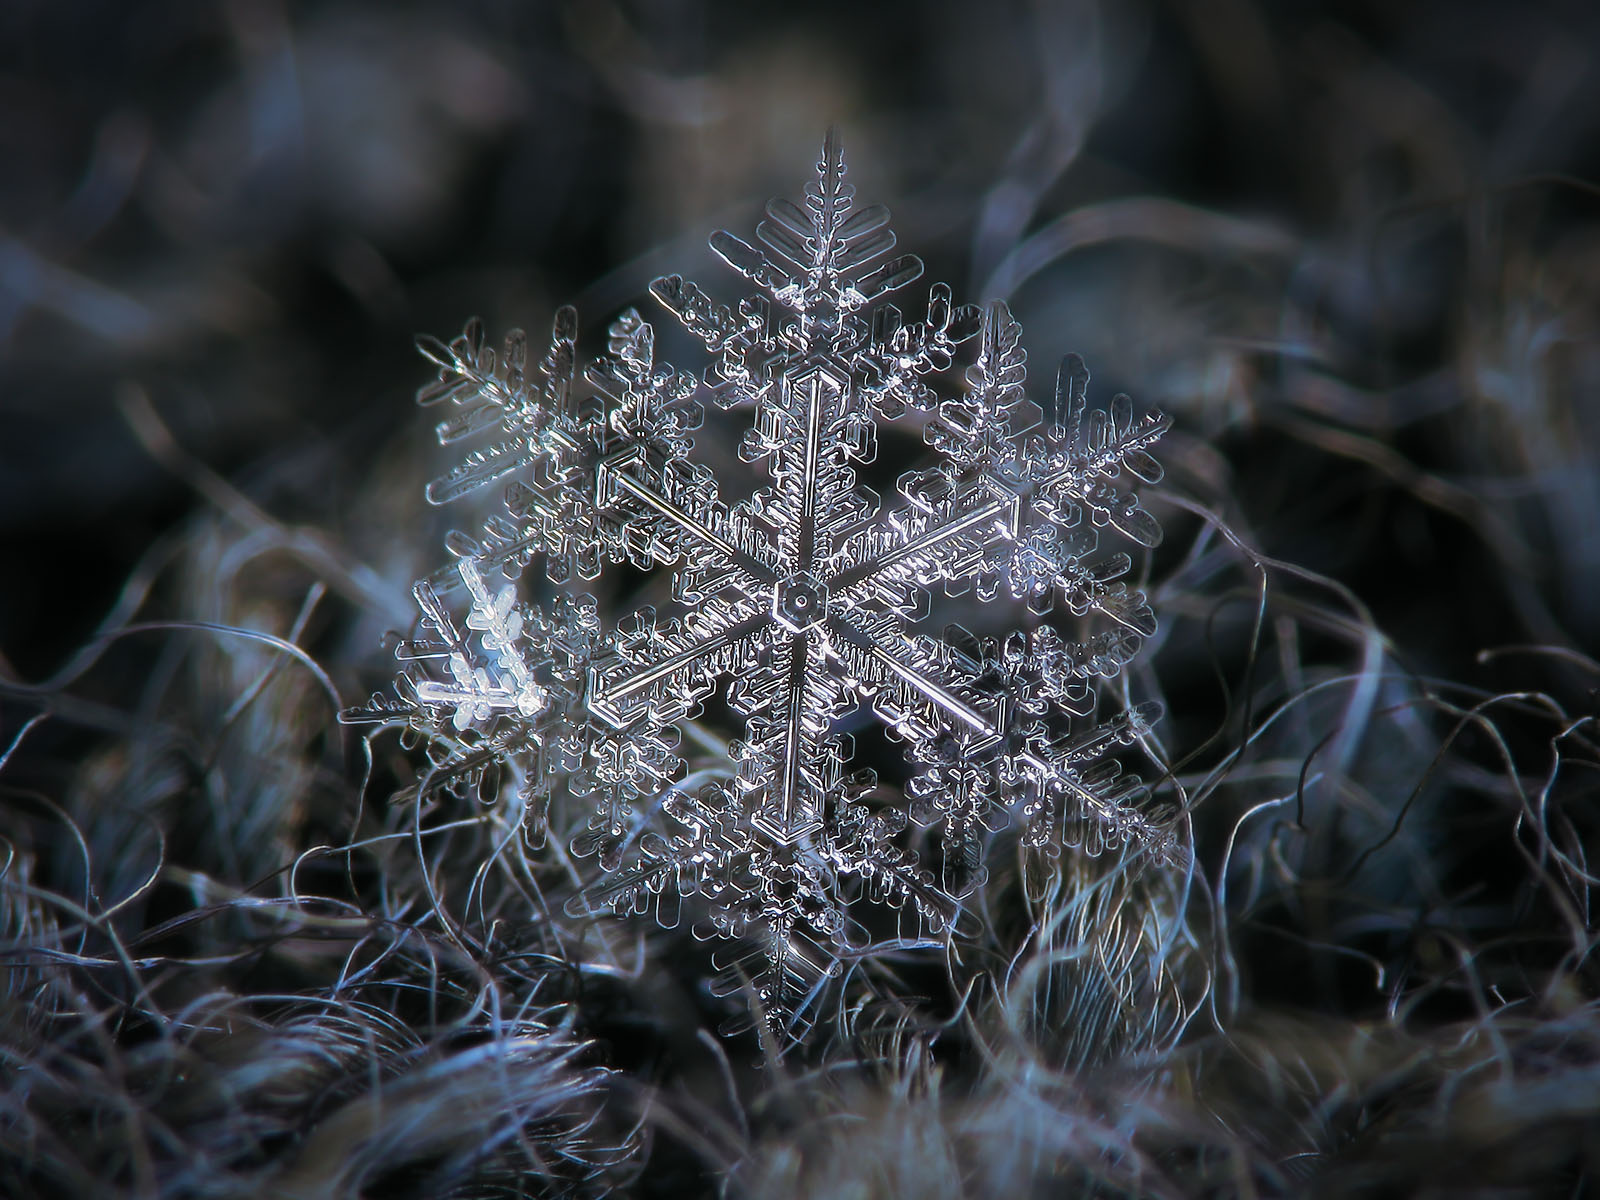 Real snowflake: large stellar dendrite with difference between inner and outer structure, glowing on dark background